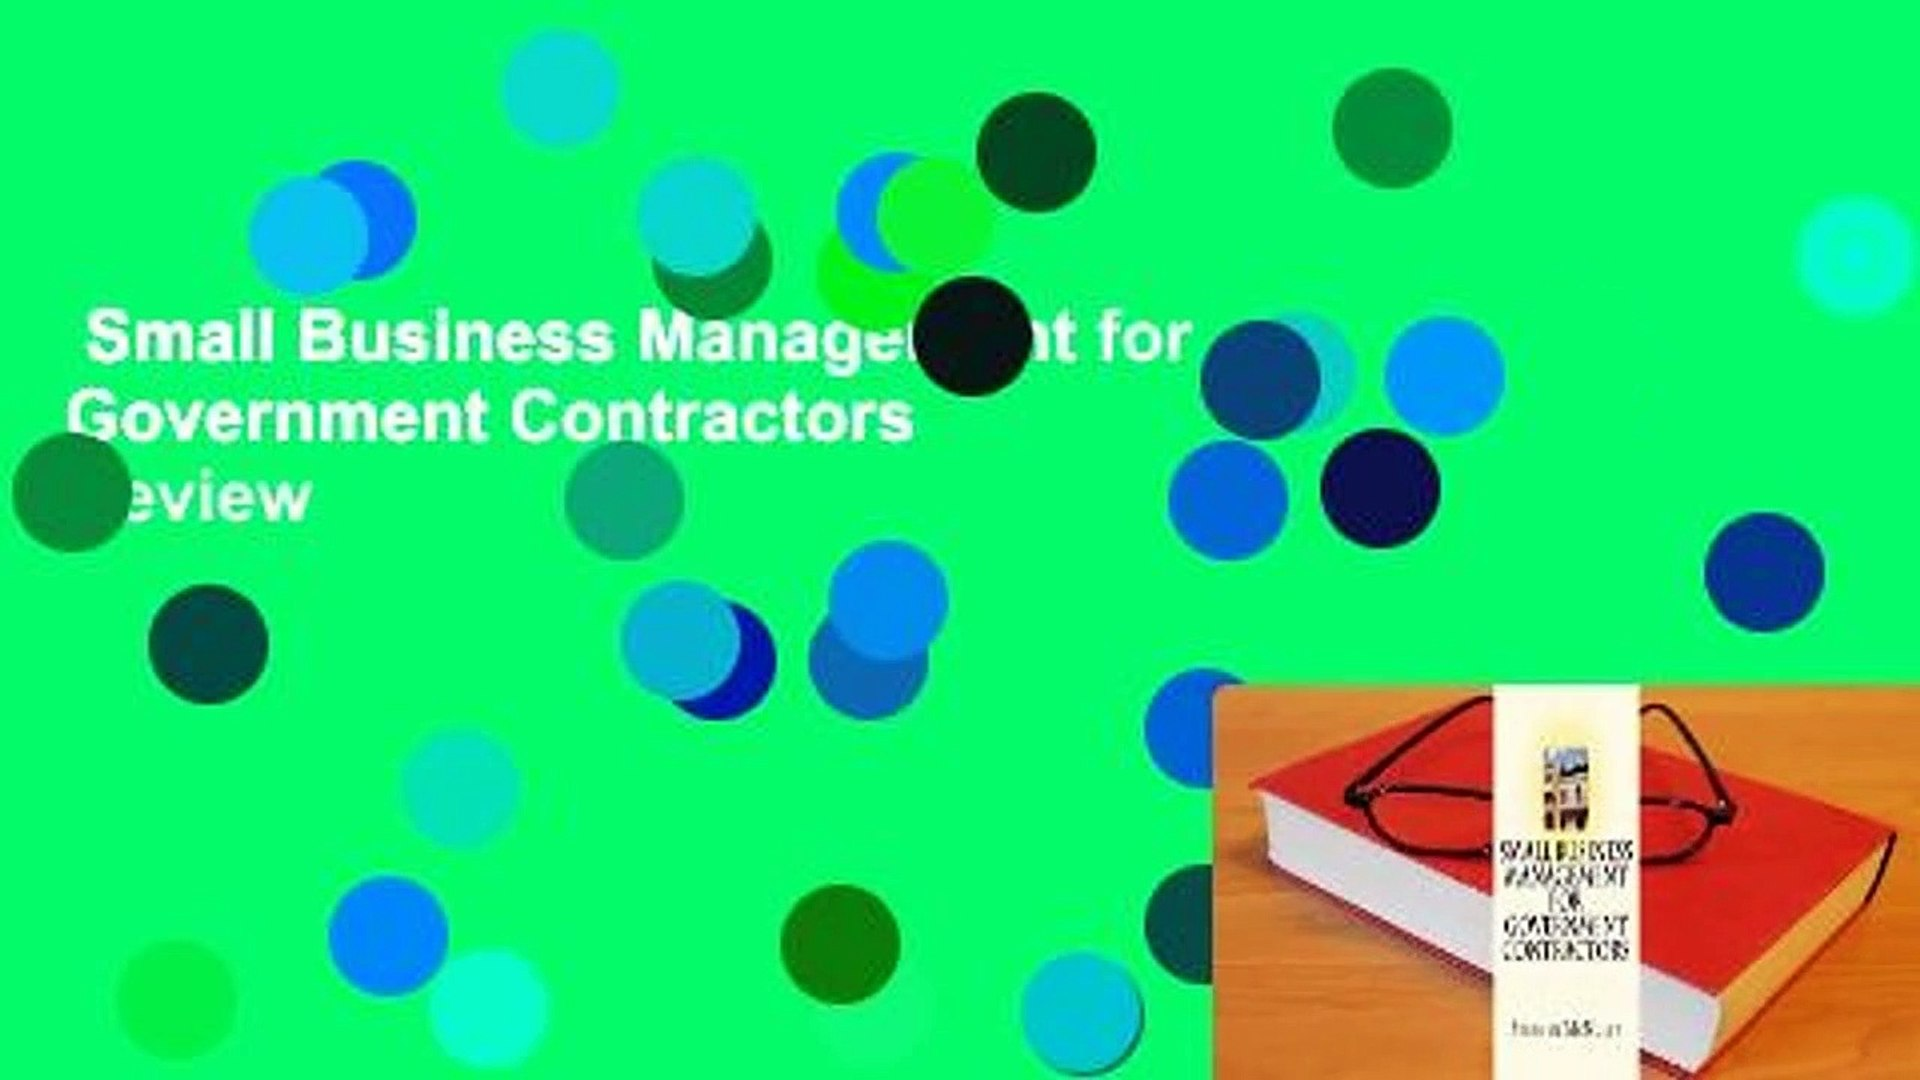 Small Business Management for Government Contractors  Review